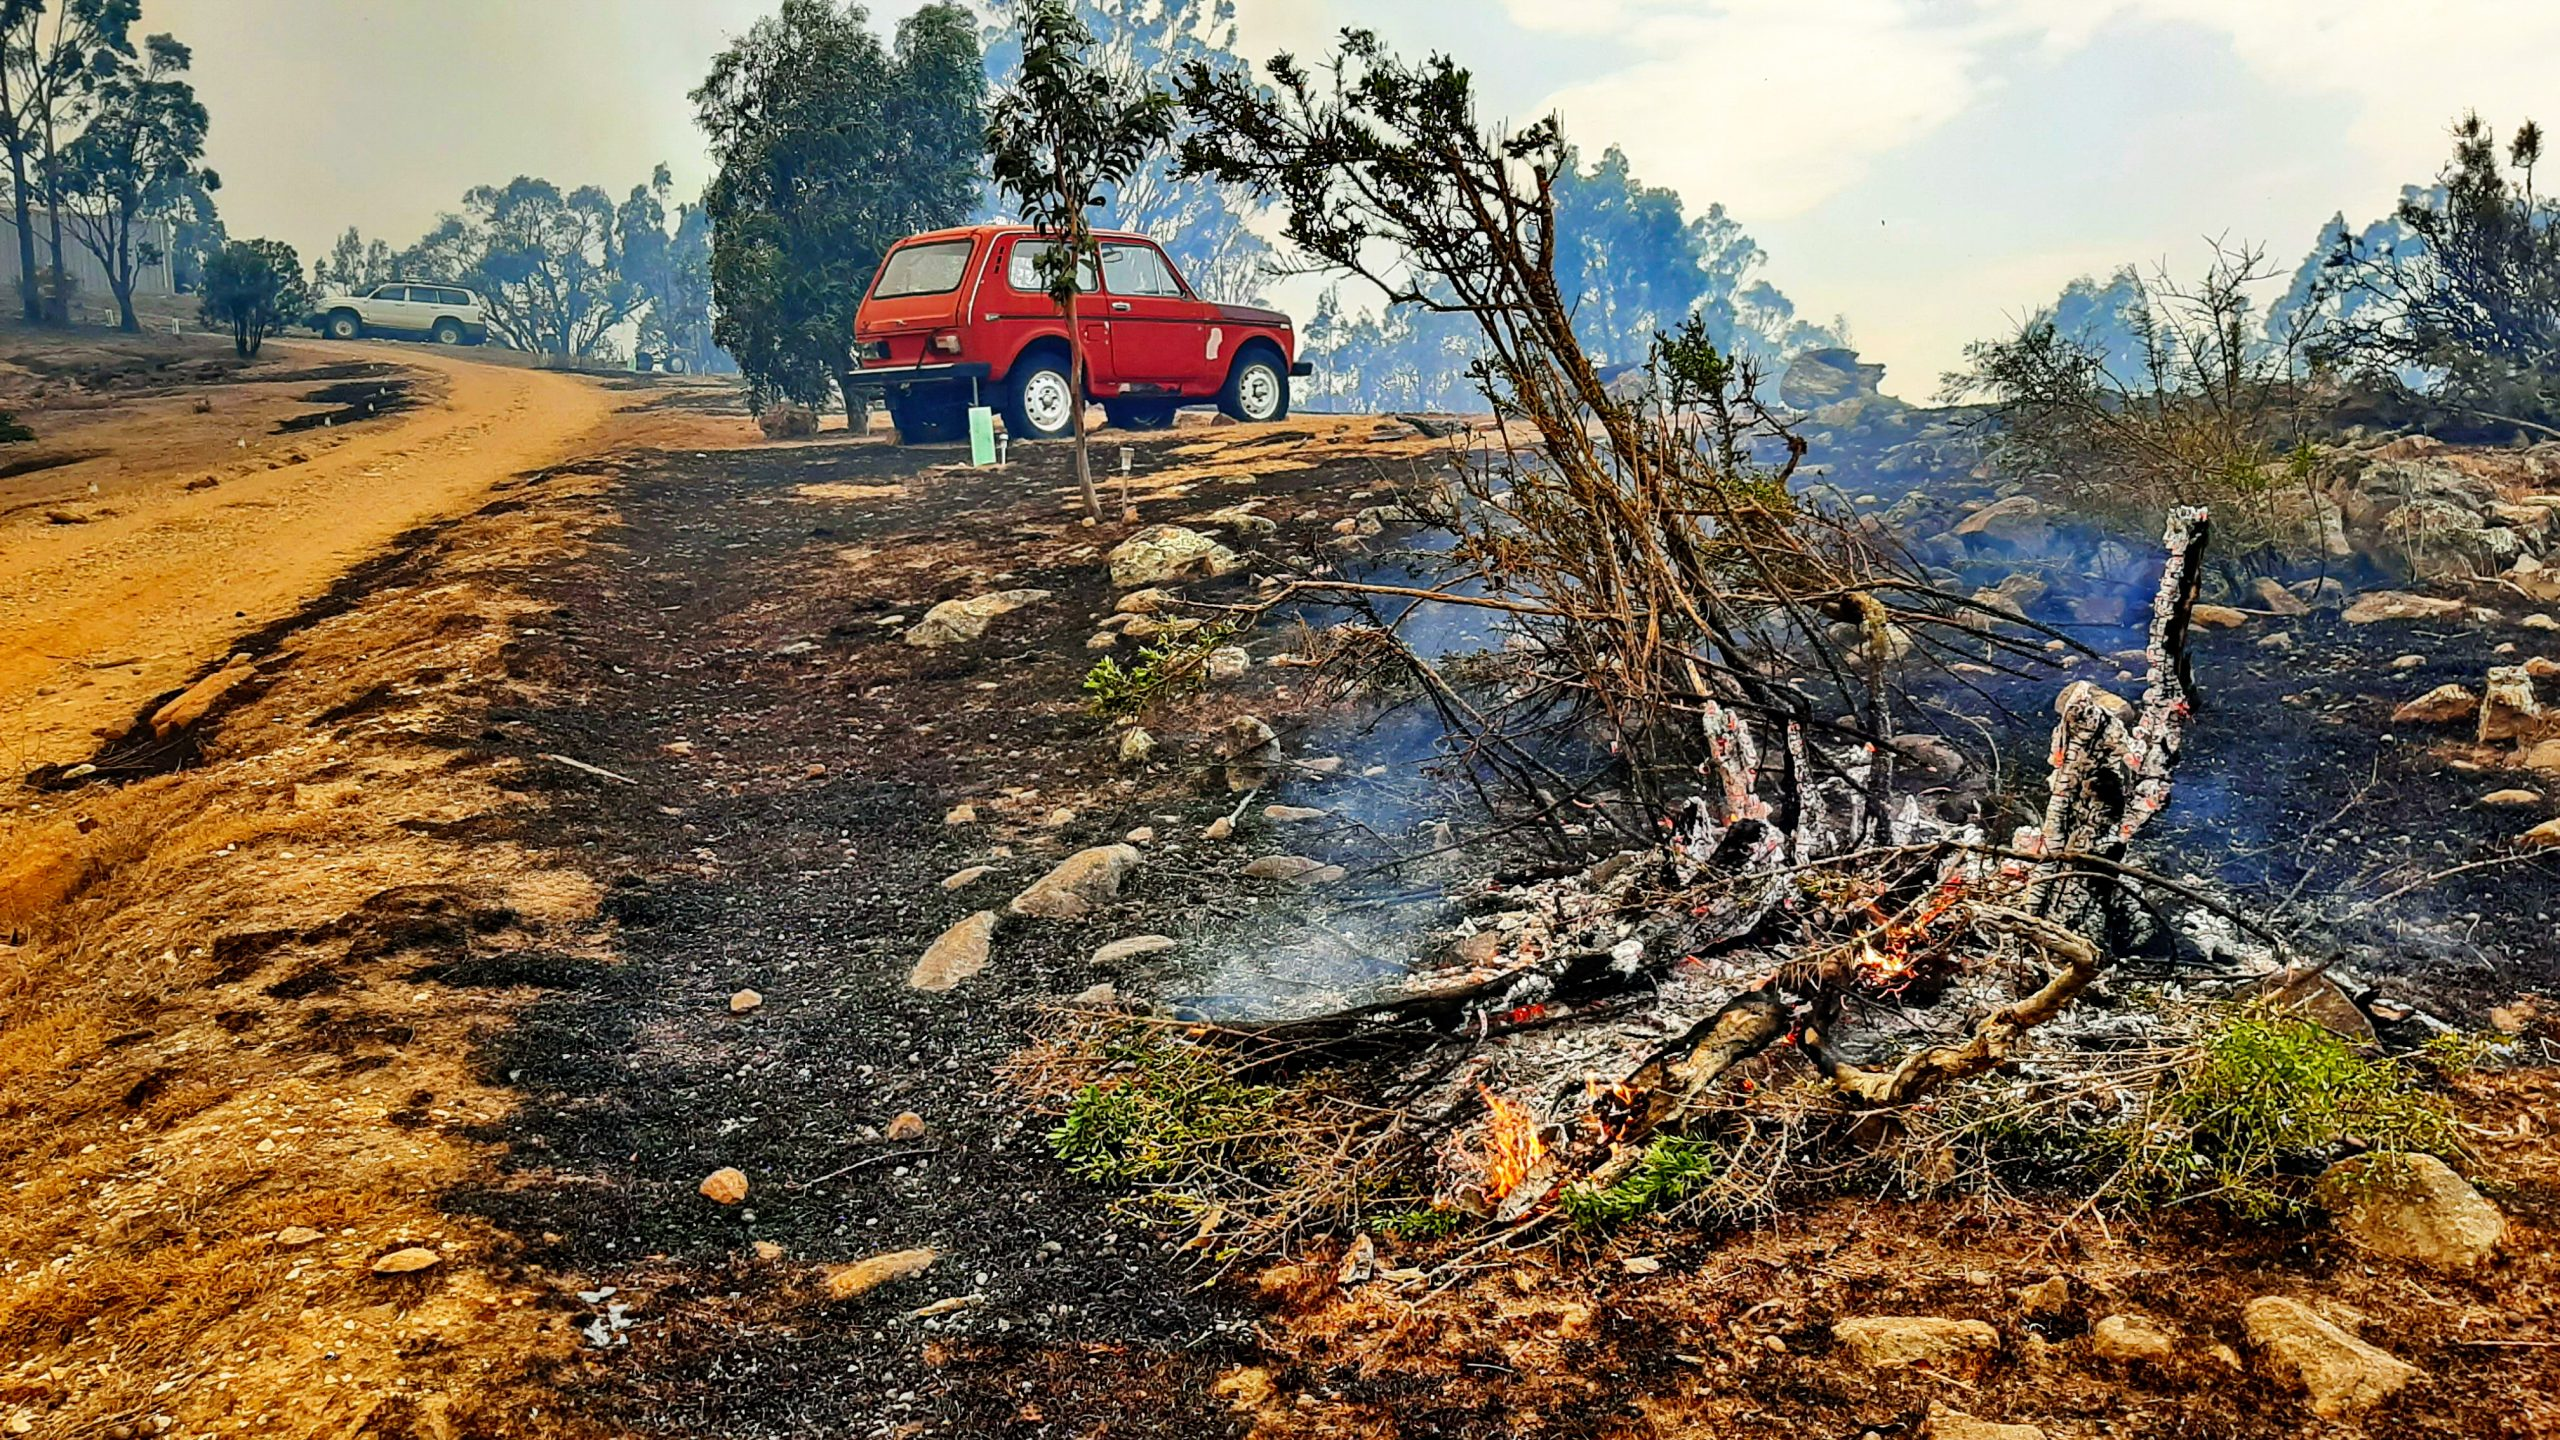 A red car parked on a road surrounded by burned land from a bush fire.